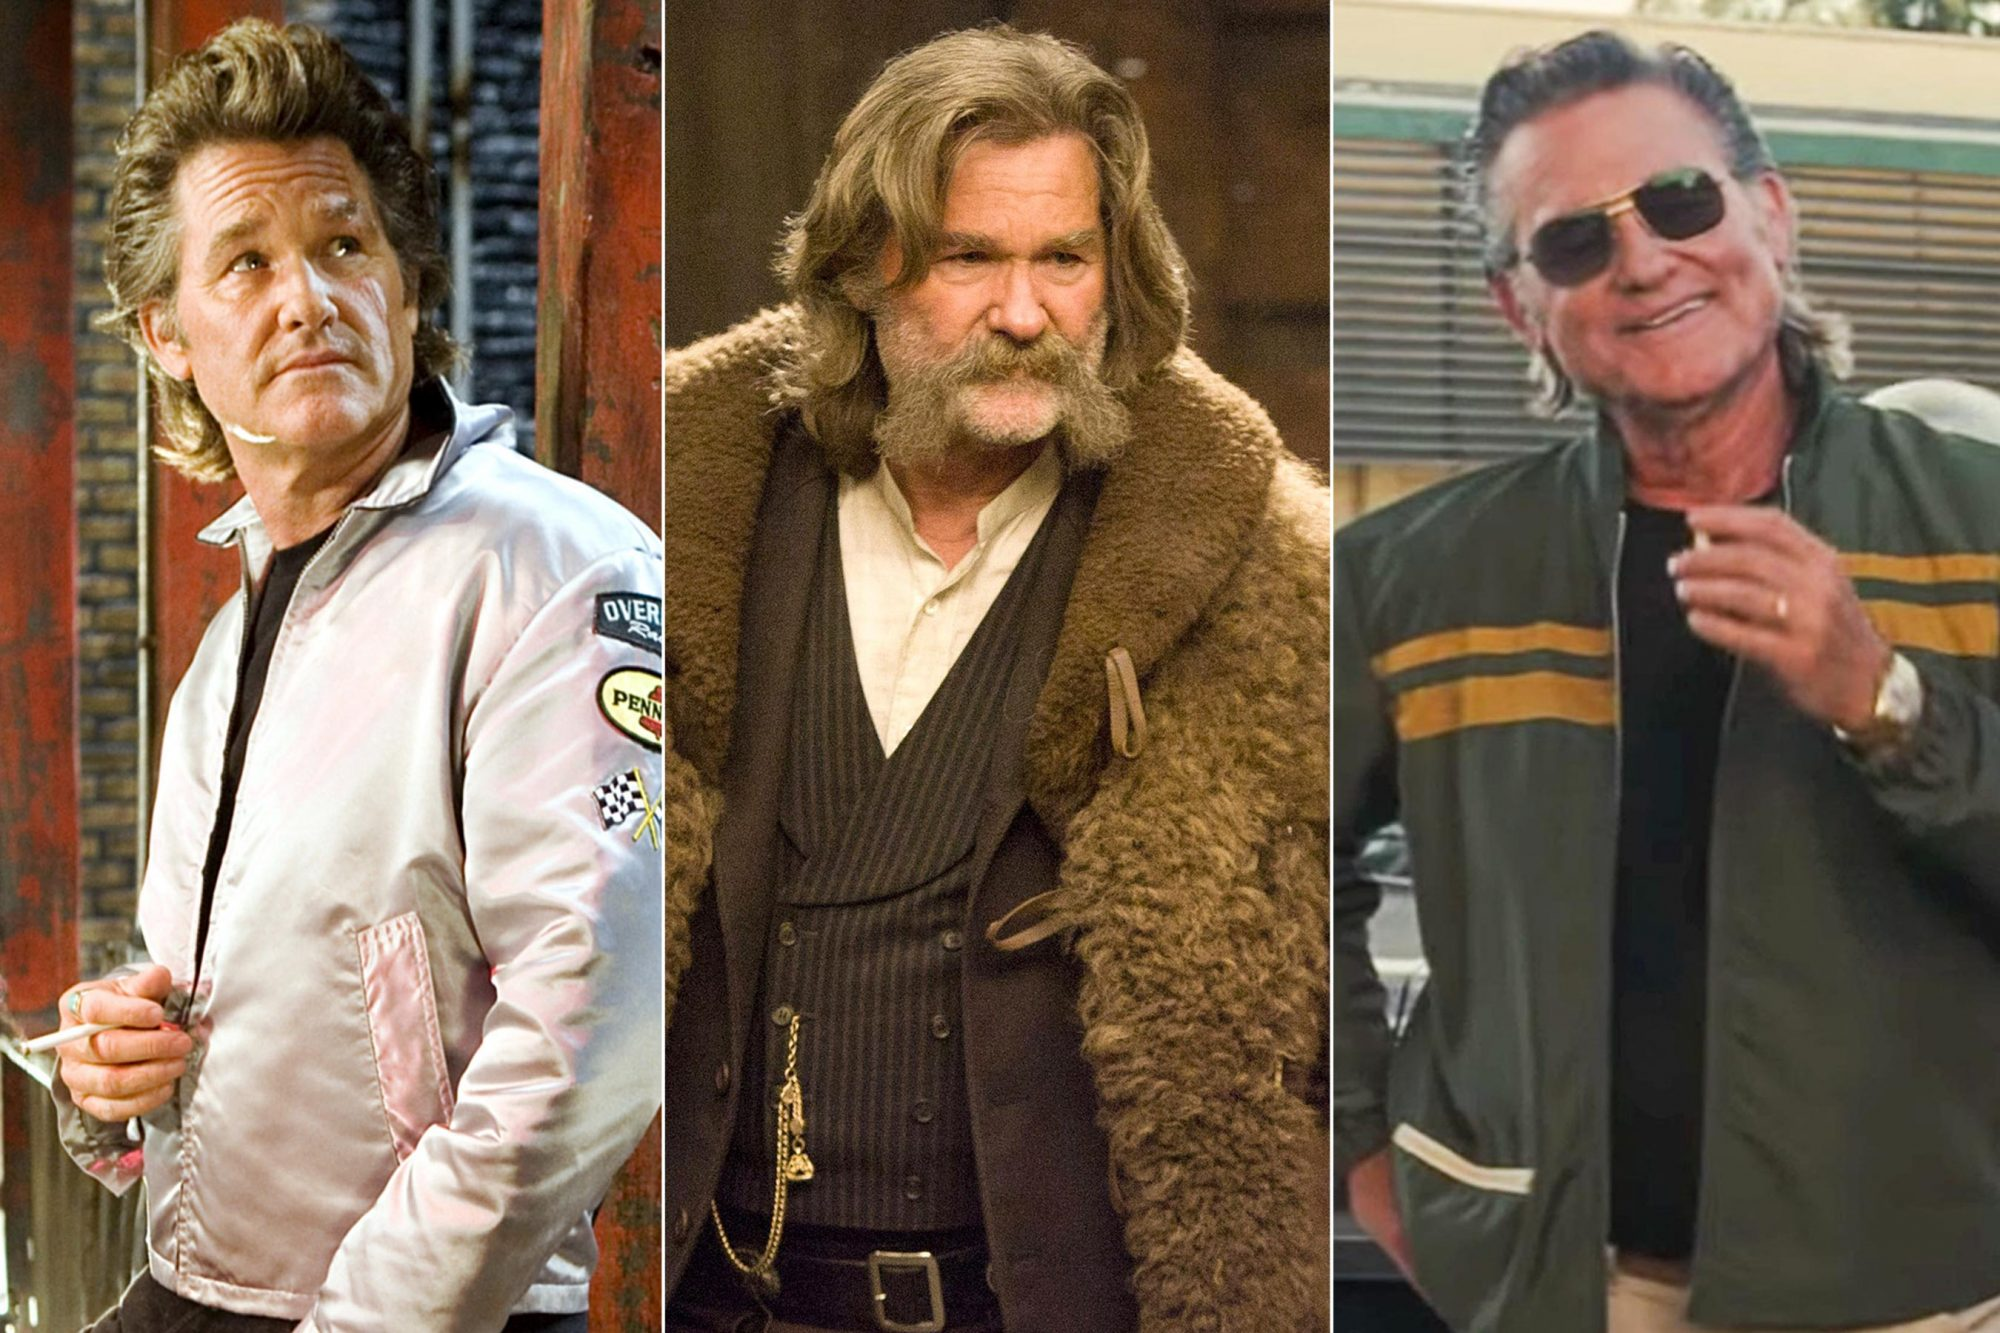 DEATH PROOF, (Quentin Tarantino segment from GRINDHOUSE), Kurt Russell, 2007. ©Weinstein Company LLC/Courtesy Everett Collection THE HATEFUL EIGHT, from left: Kurt Russell, 2015. ph: Andrew Cooper / © The Weinstein Company / Courtesy Everett Collection ONCE UPON A TIME IN HOLLYWOOD screen grab https://www.youtube.com/watch?v=ELeMaP8EPAA Kurt Russell CR: Columbia Pictures